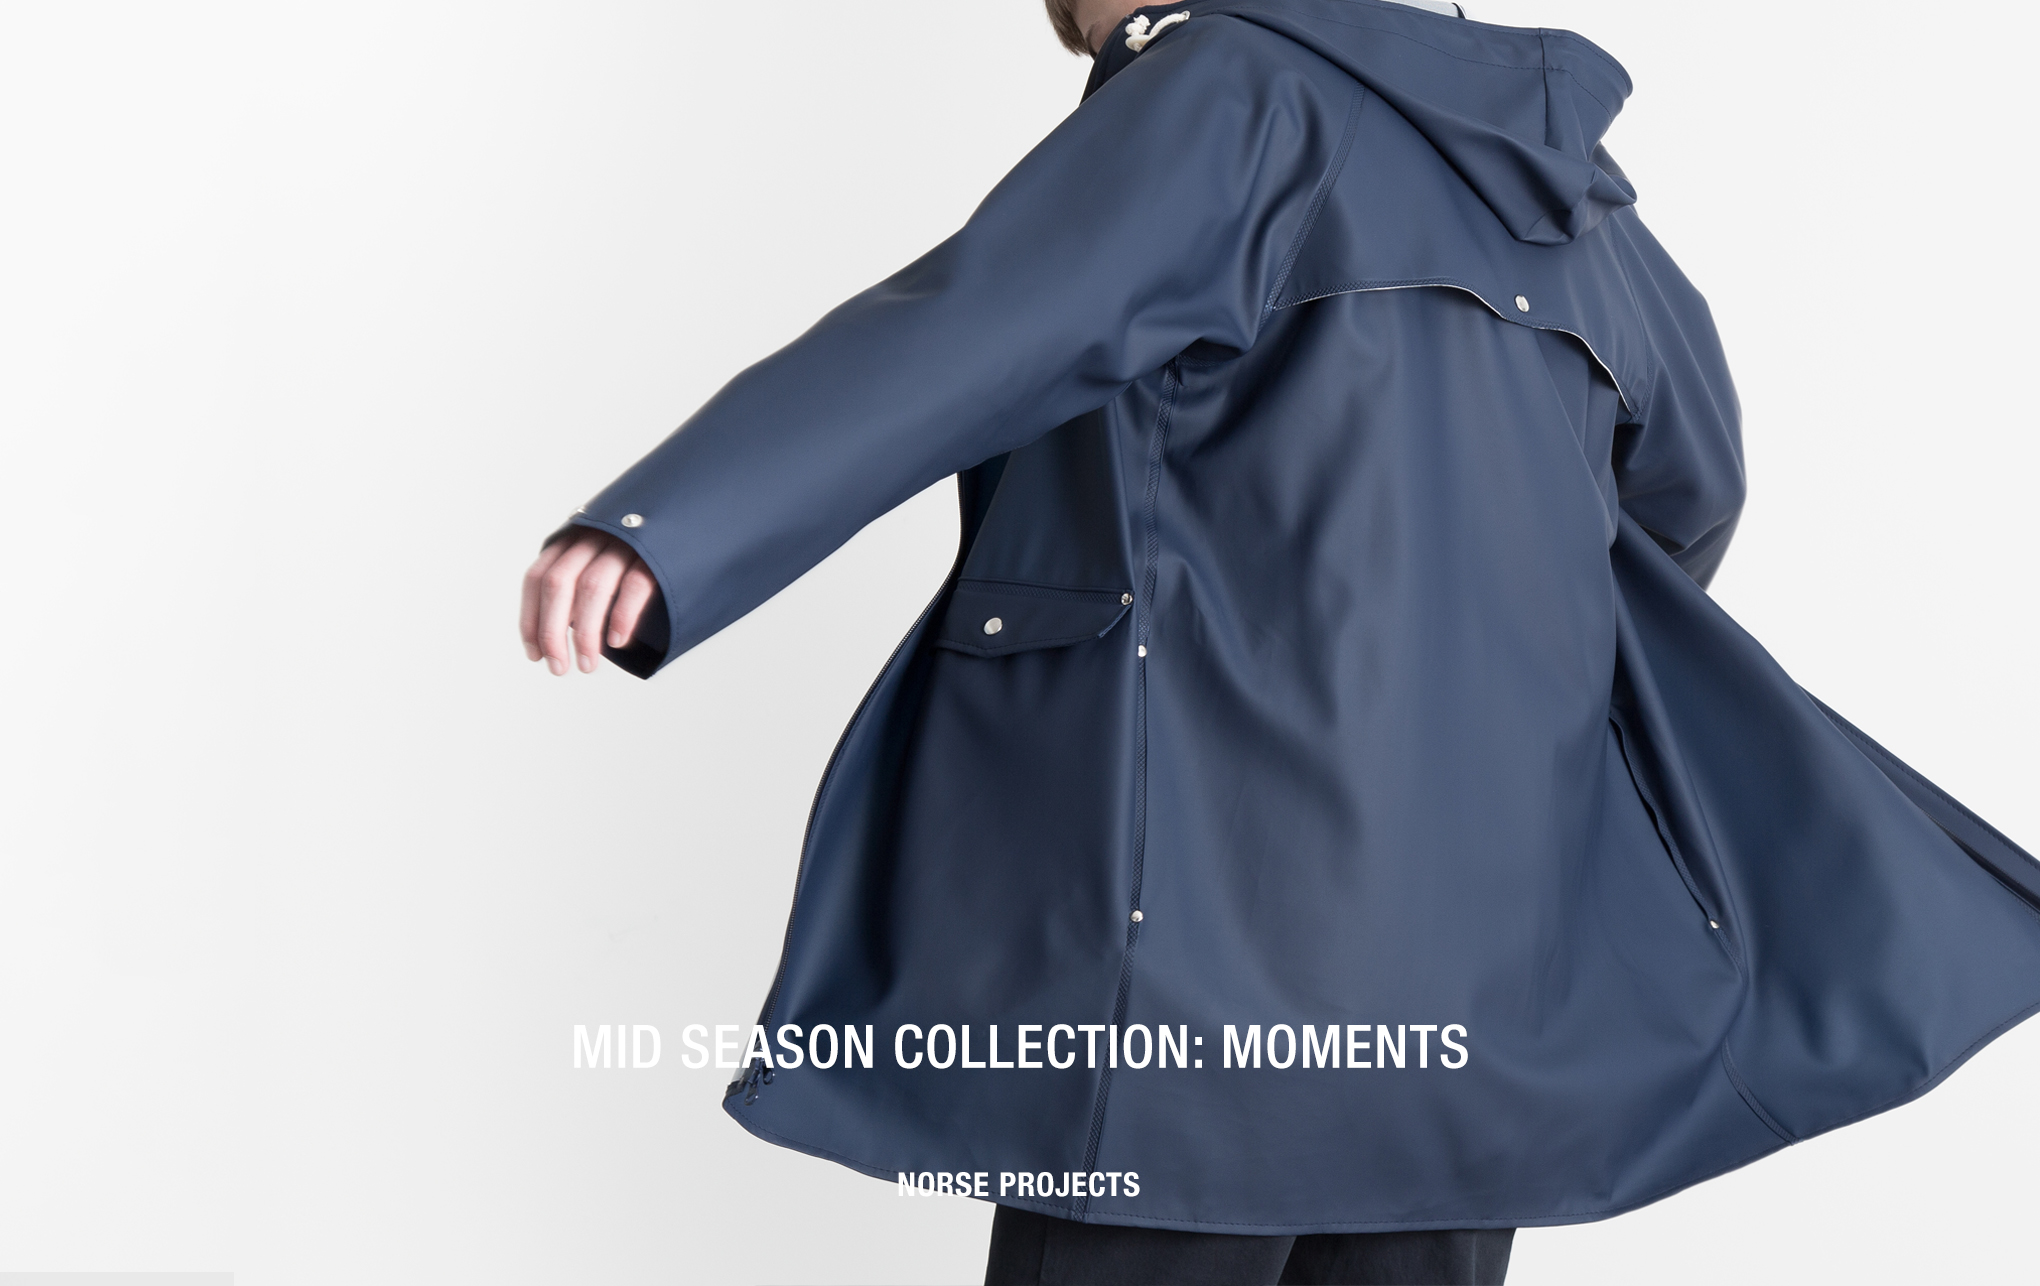 Norse Projects Moments Collection - Norsestore.com